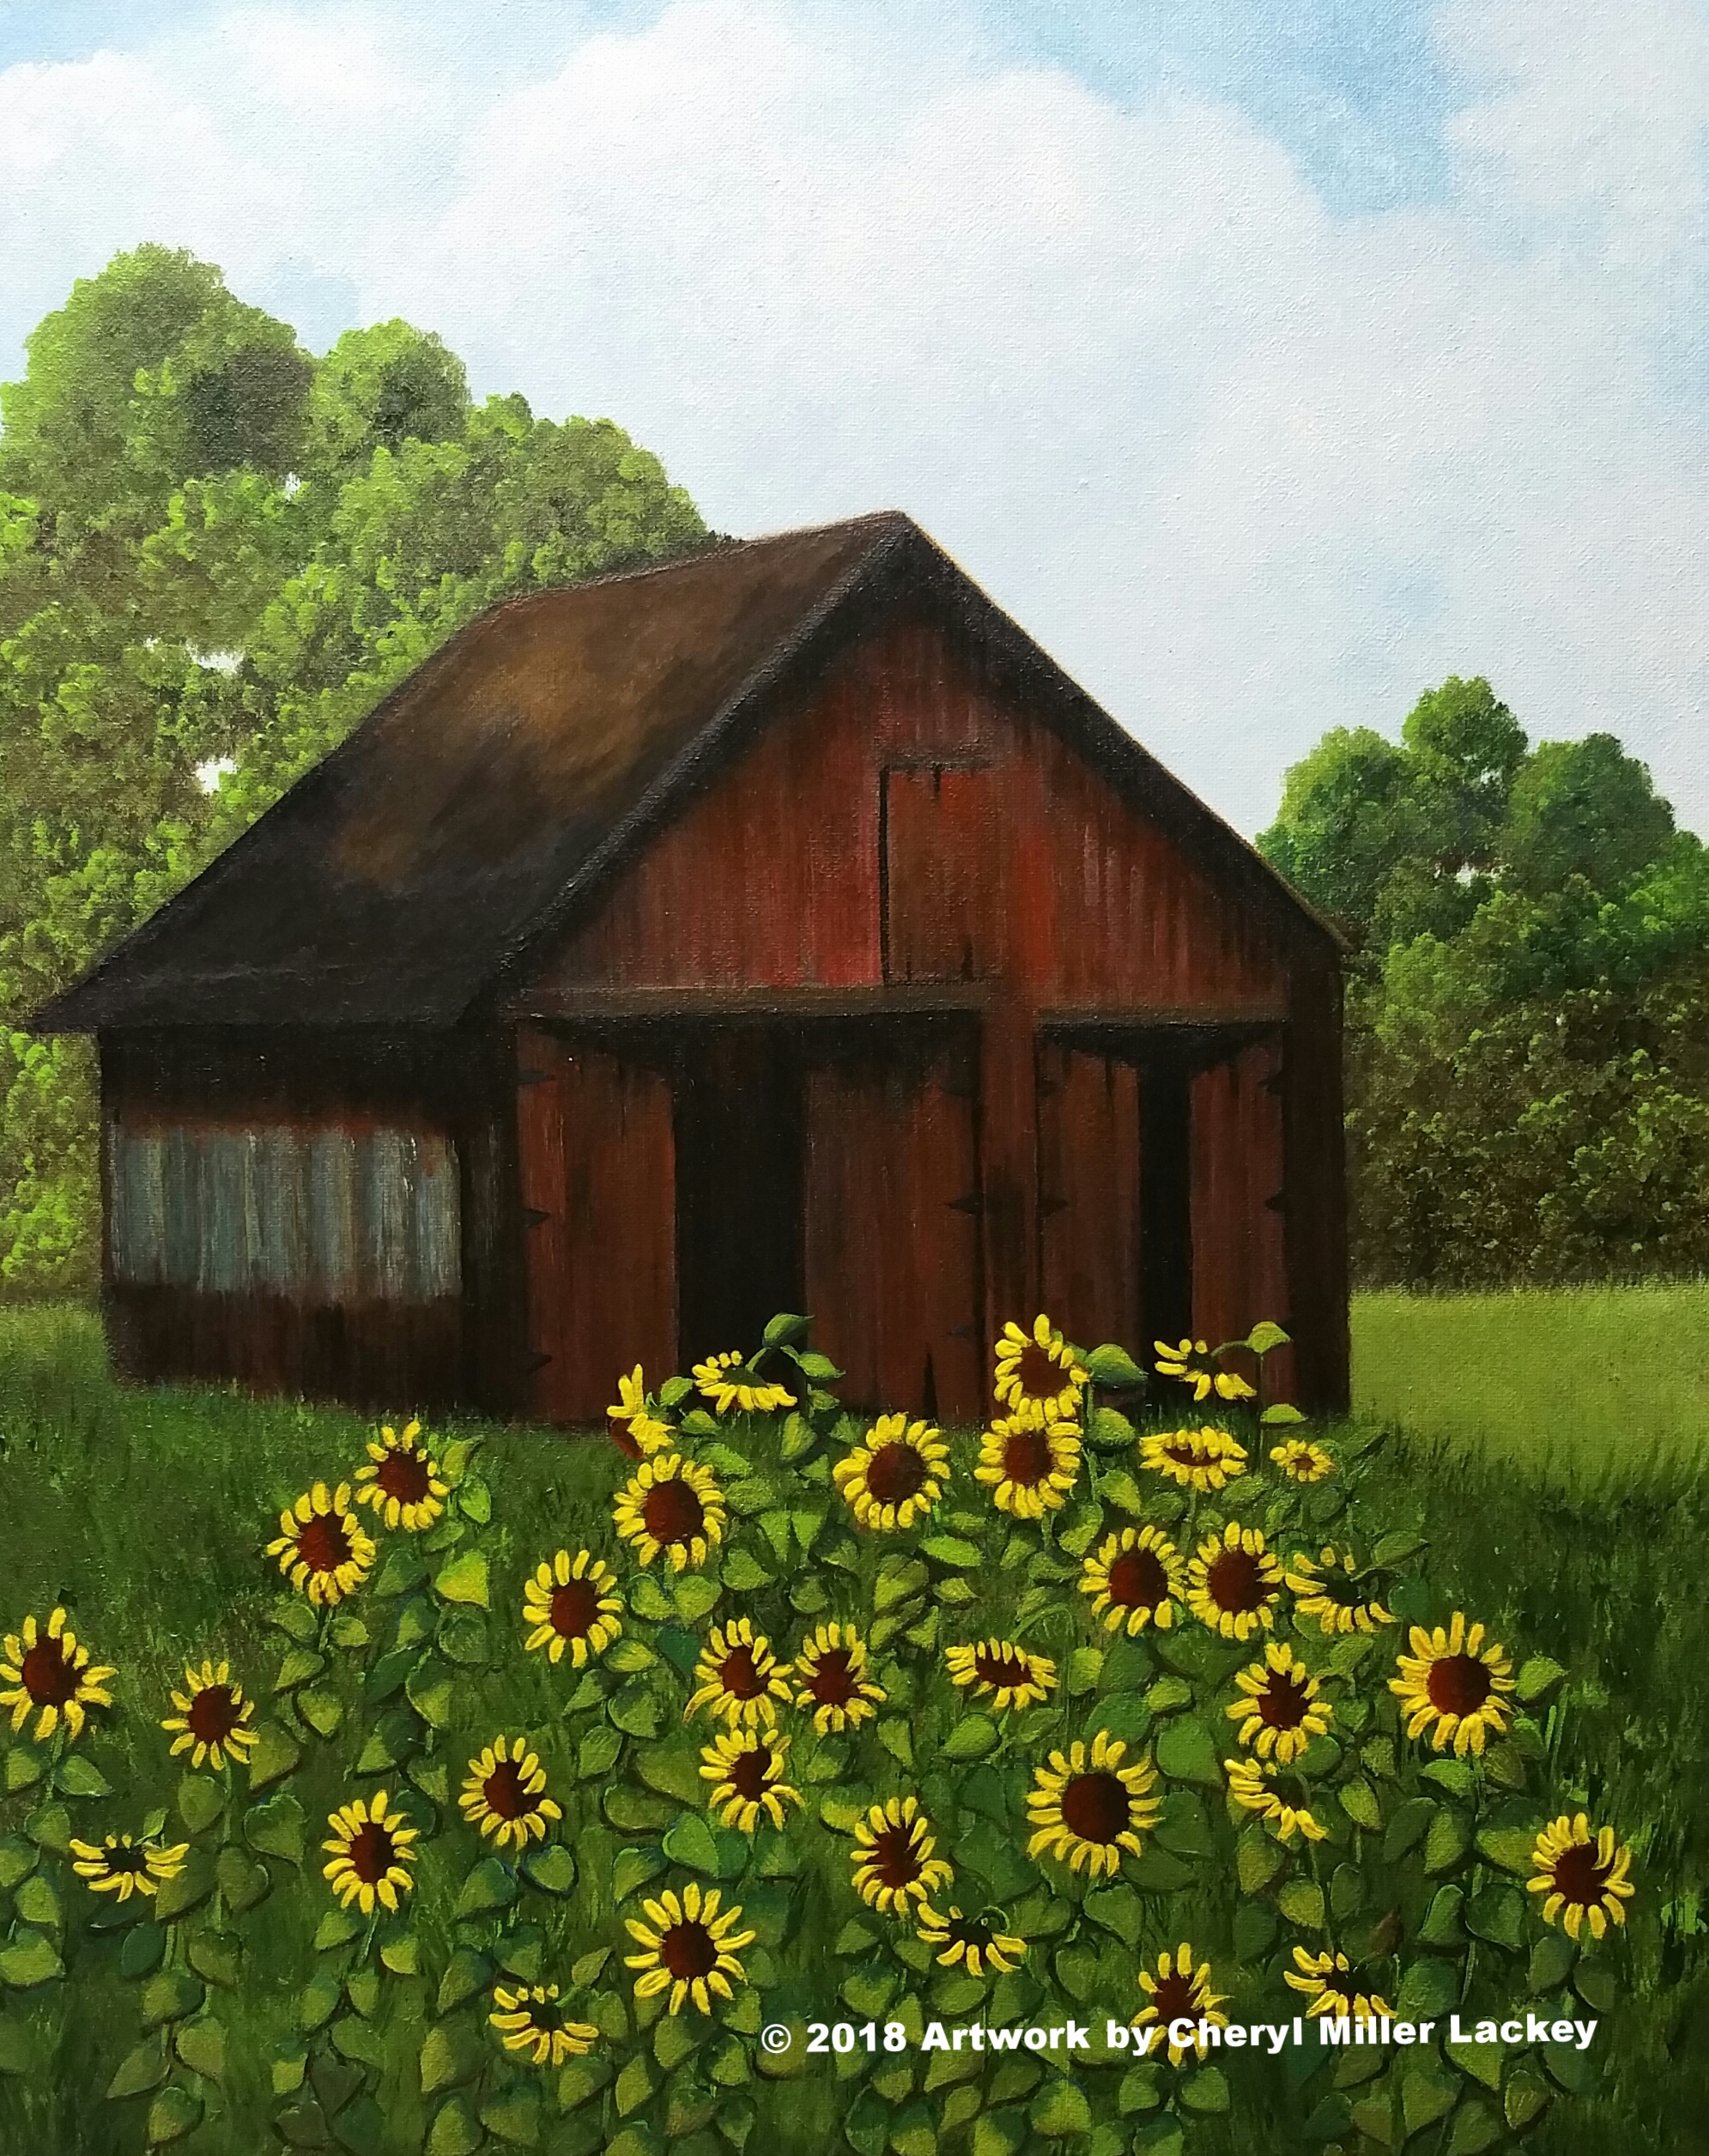 Lackey_Sunflowers_Acrylic 16 X 20.jpg